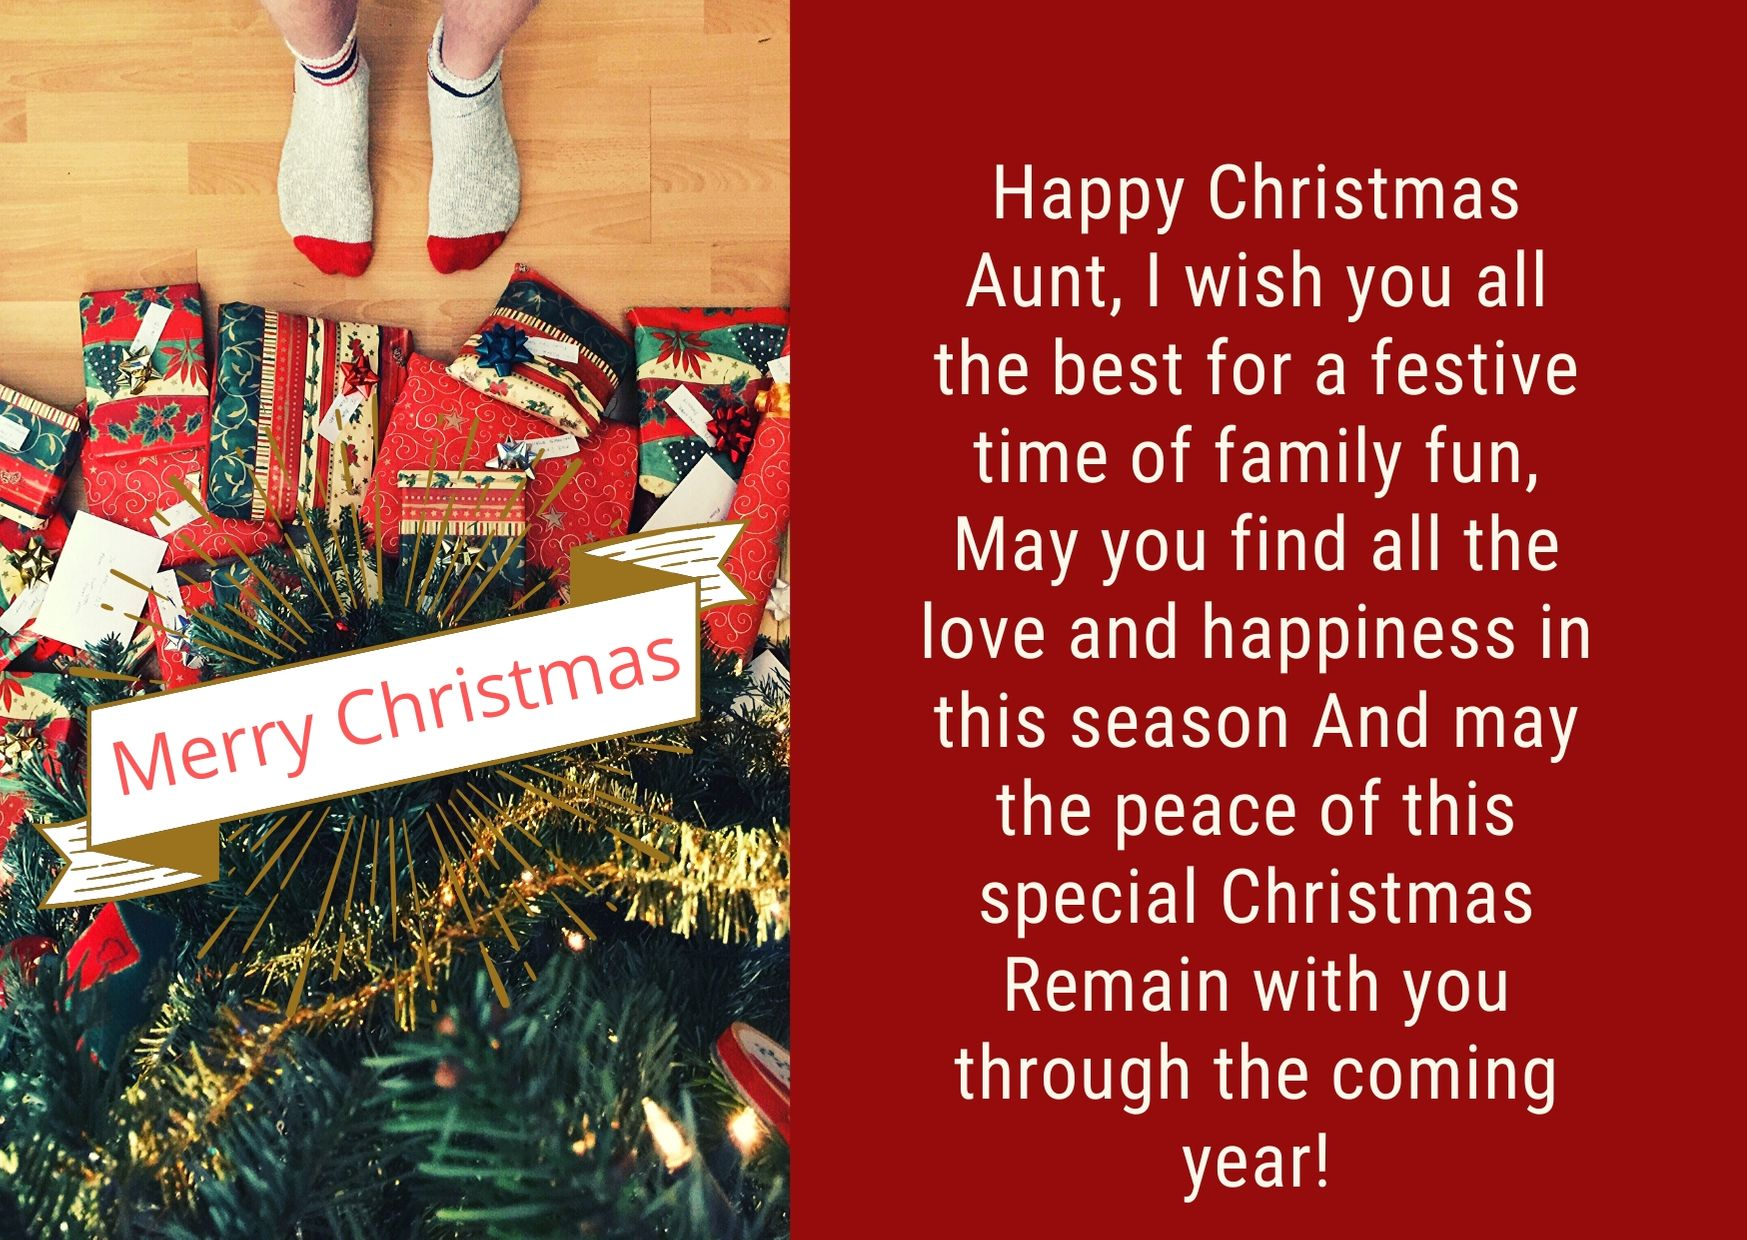 wishing you a Merry Christmas my Aunt